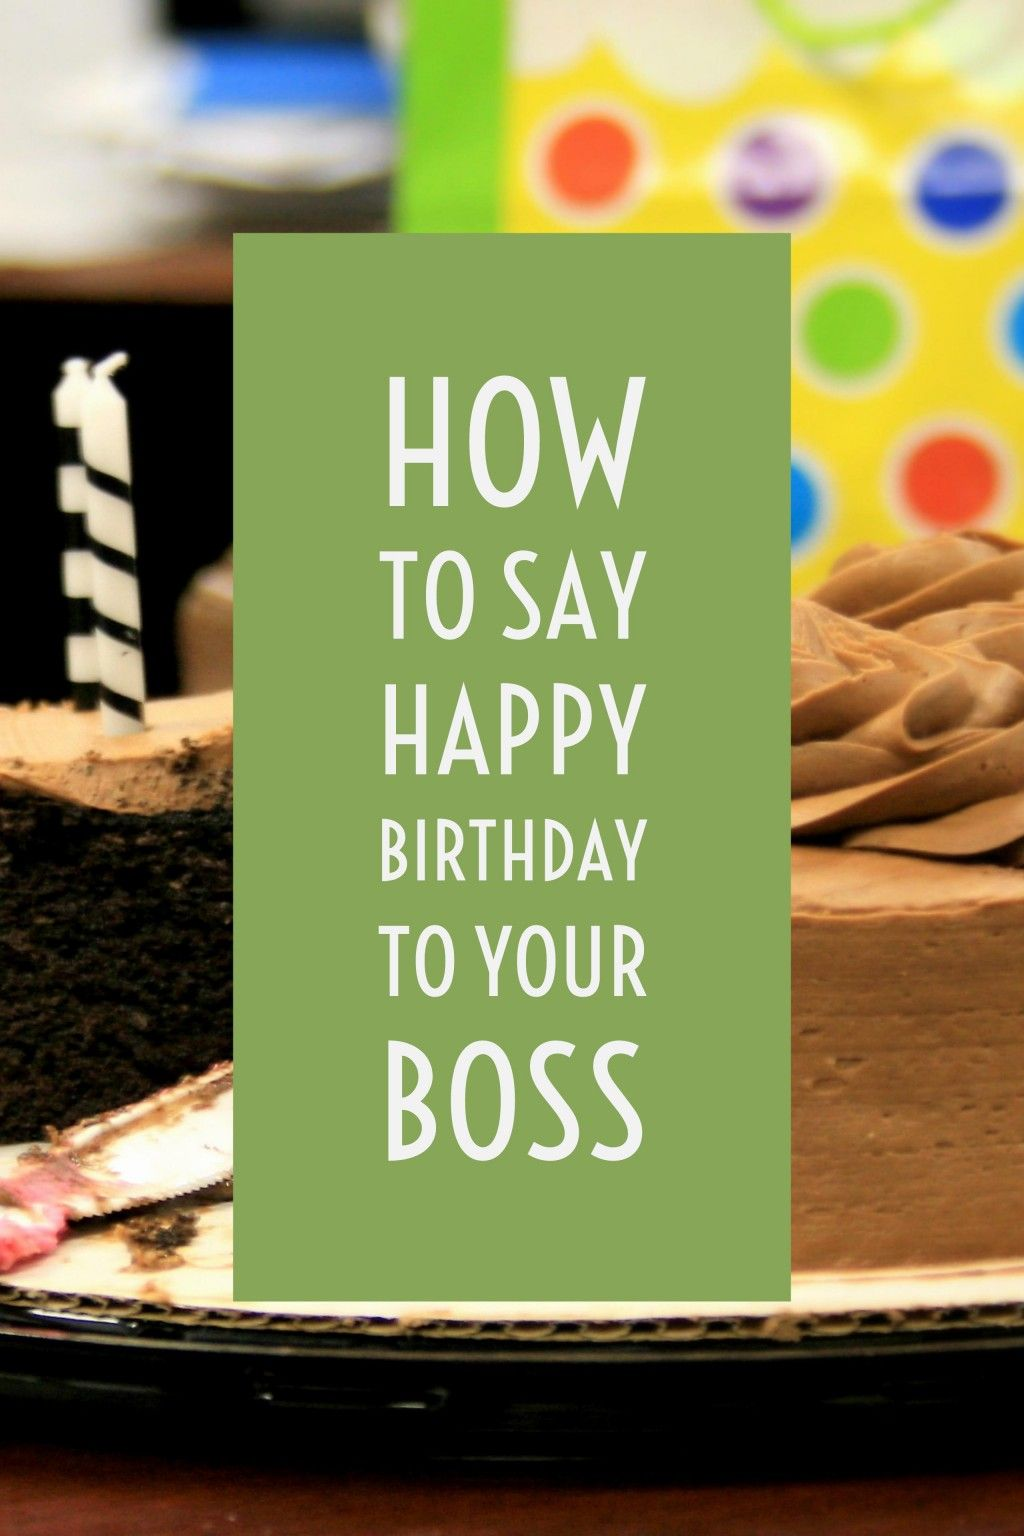 Business Birthday Card Messages: Wishes for Clients and Employees ...